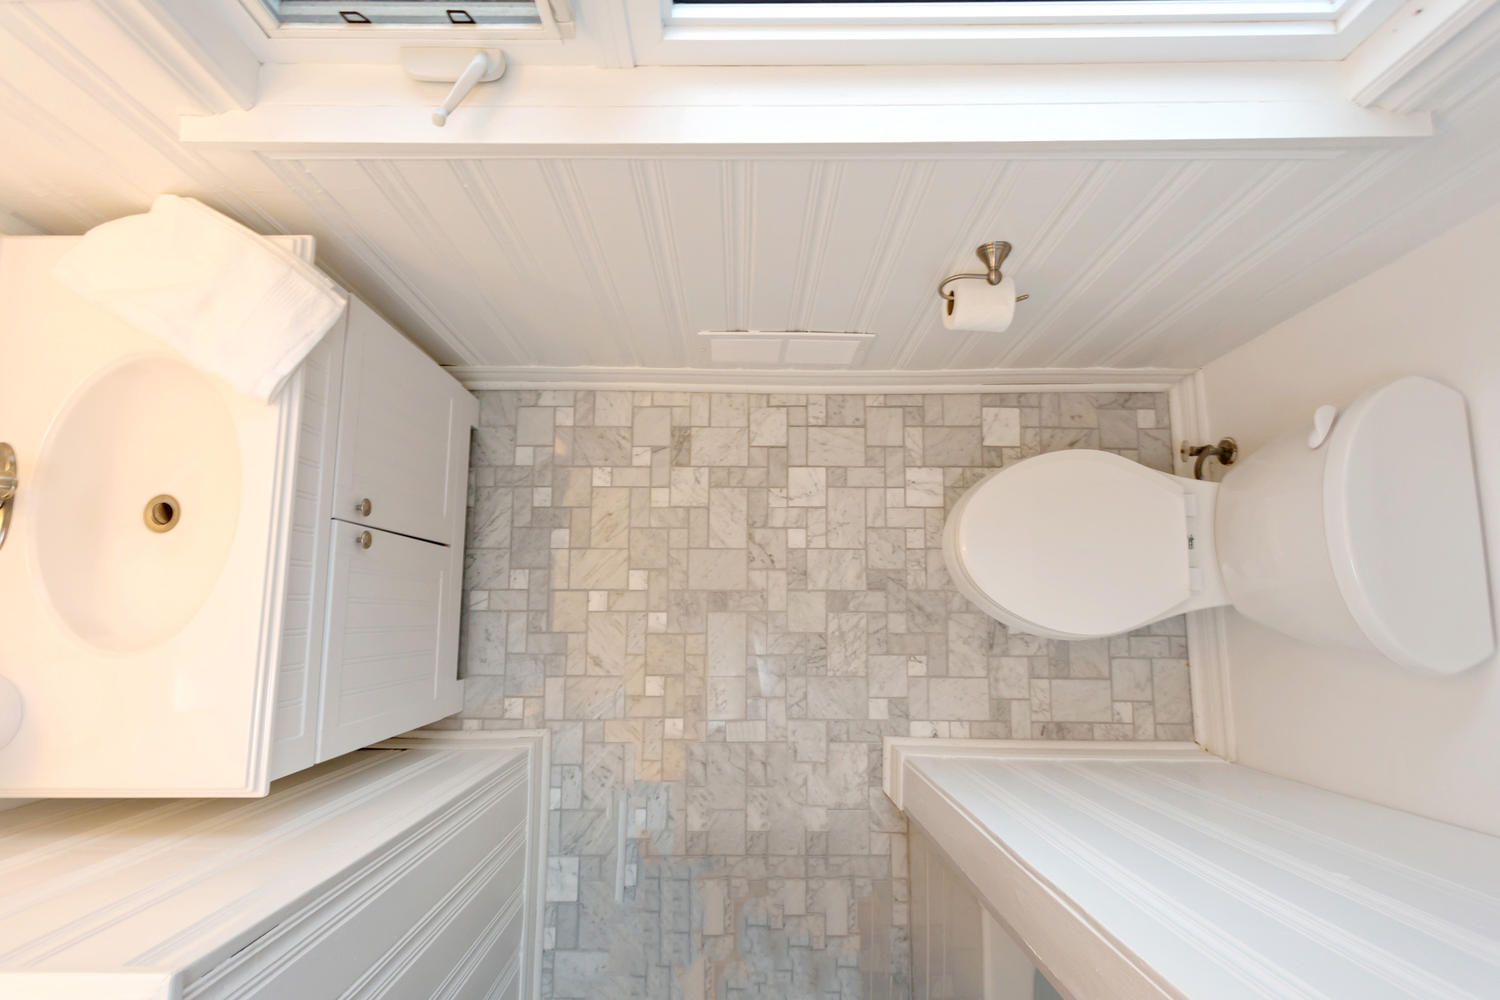 Using a more interesting floor tile can add luxury and interest to an otherwise small bathroom space